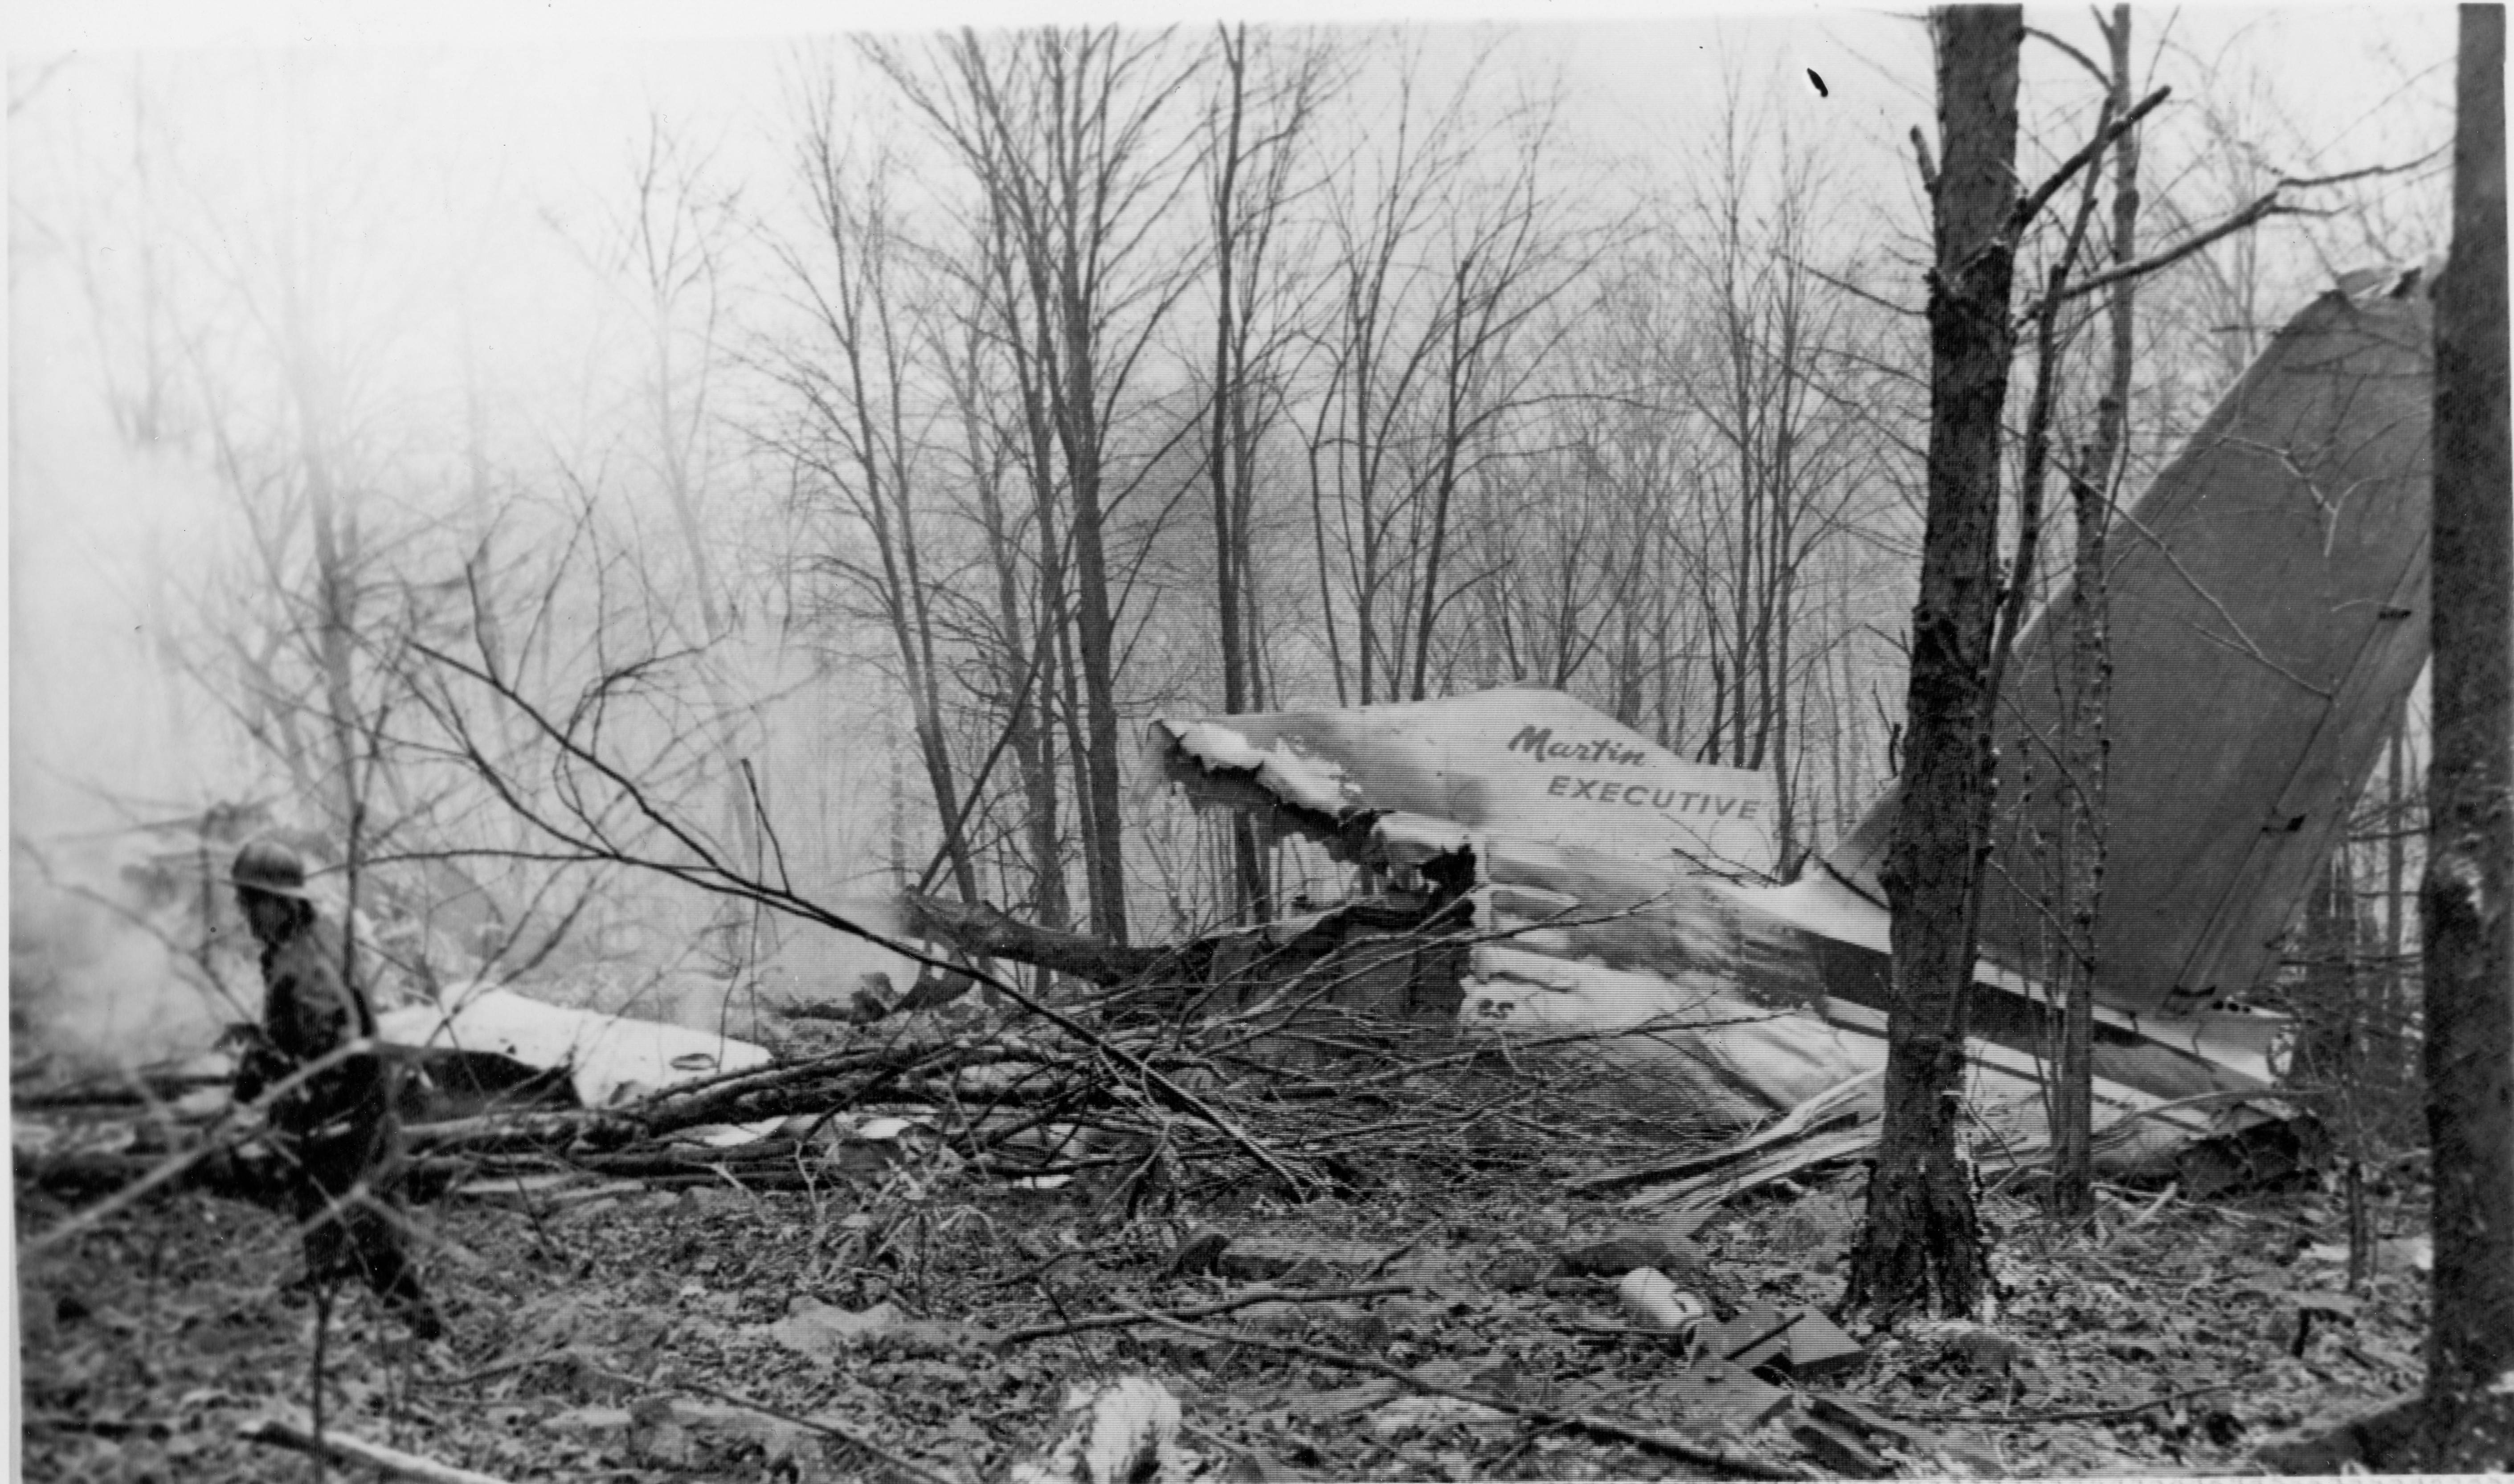 Smoldering tail section. Photo courtesy of the Williamsport Sun Gazette archive.